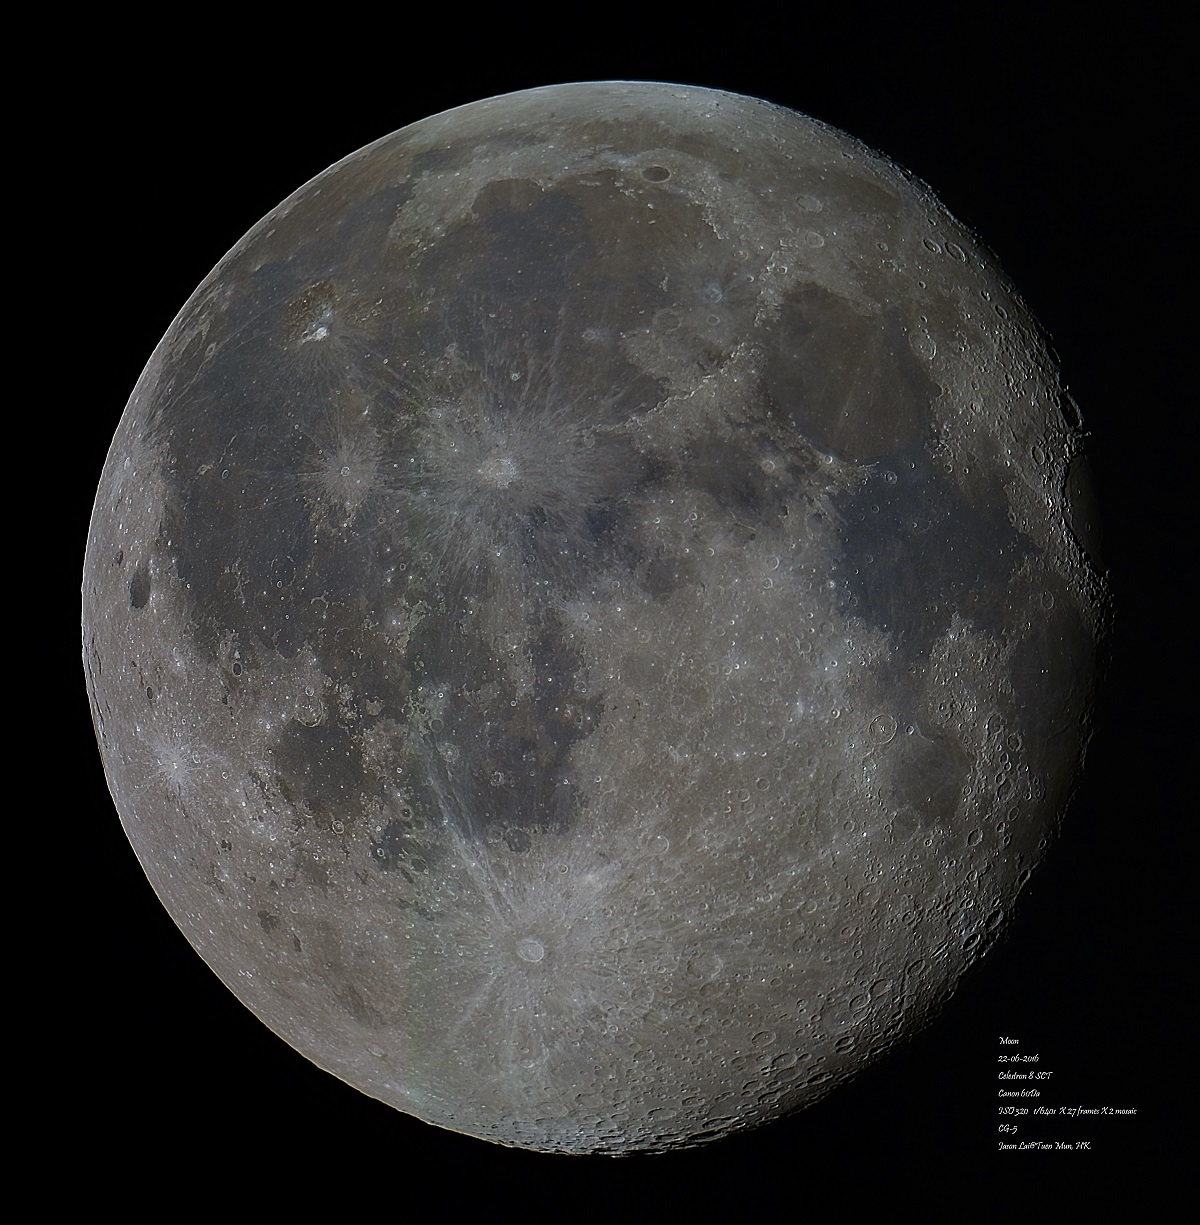 moon22062016_IMG_9499low_stitch_ps.jpg